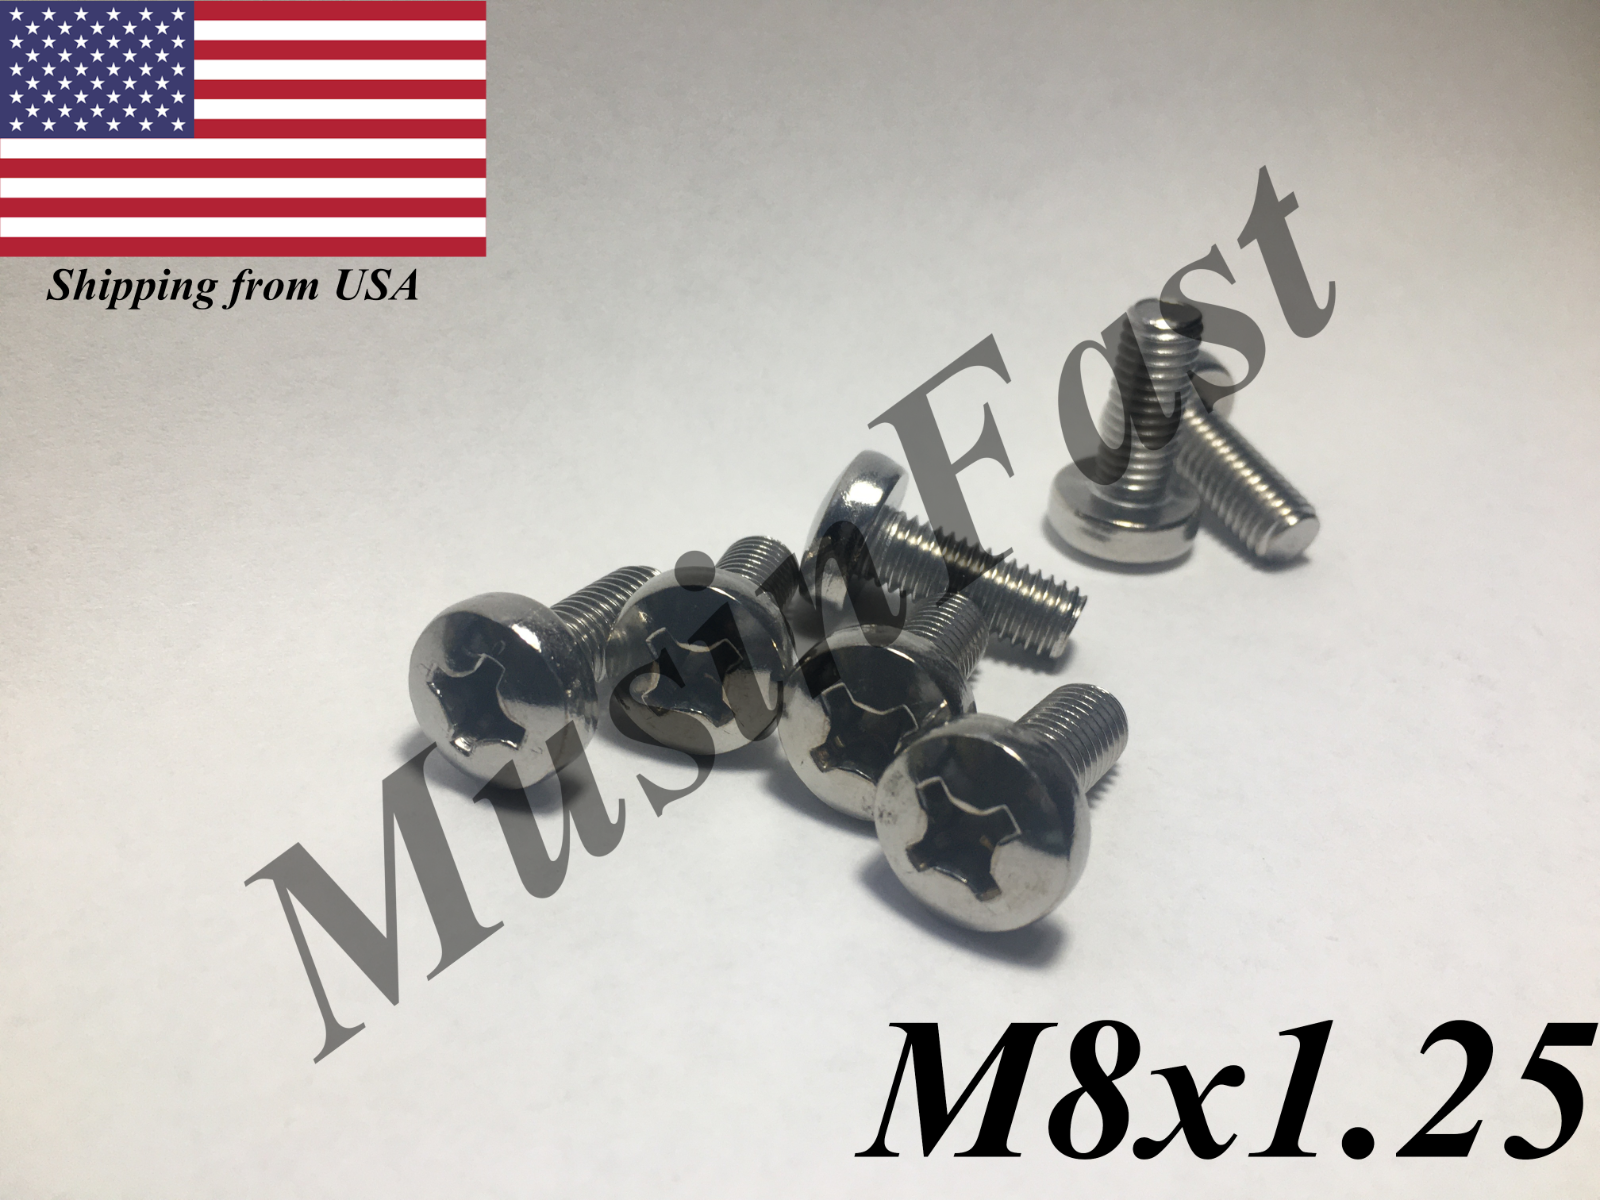 12 @ M5 X 16 STAINLESS STEEL A2 TORX TX PIN BUTTON HEAD SECURITY SCREW TX25 T25